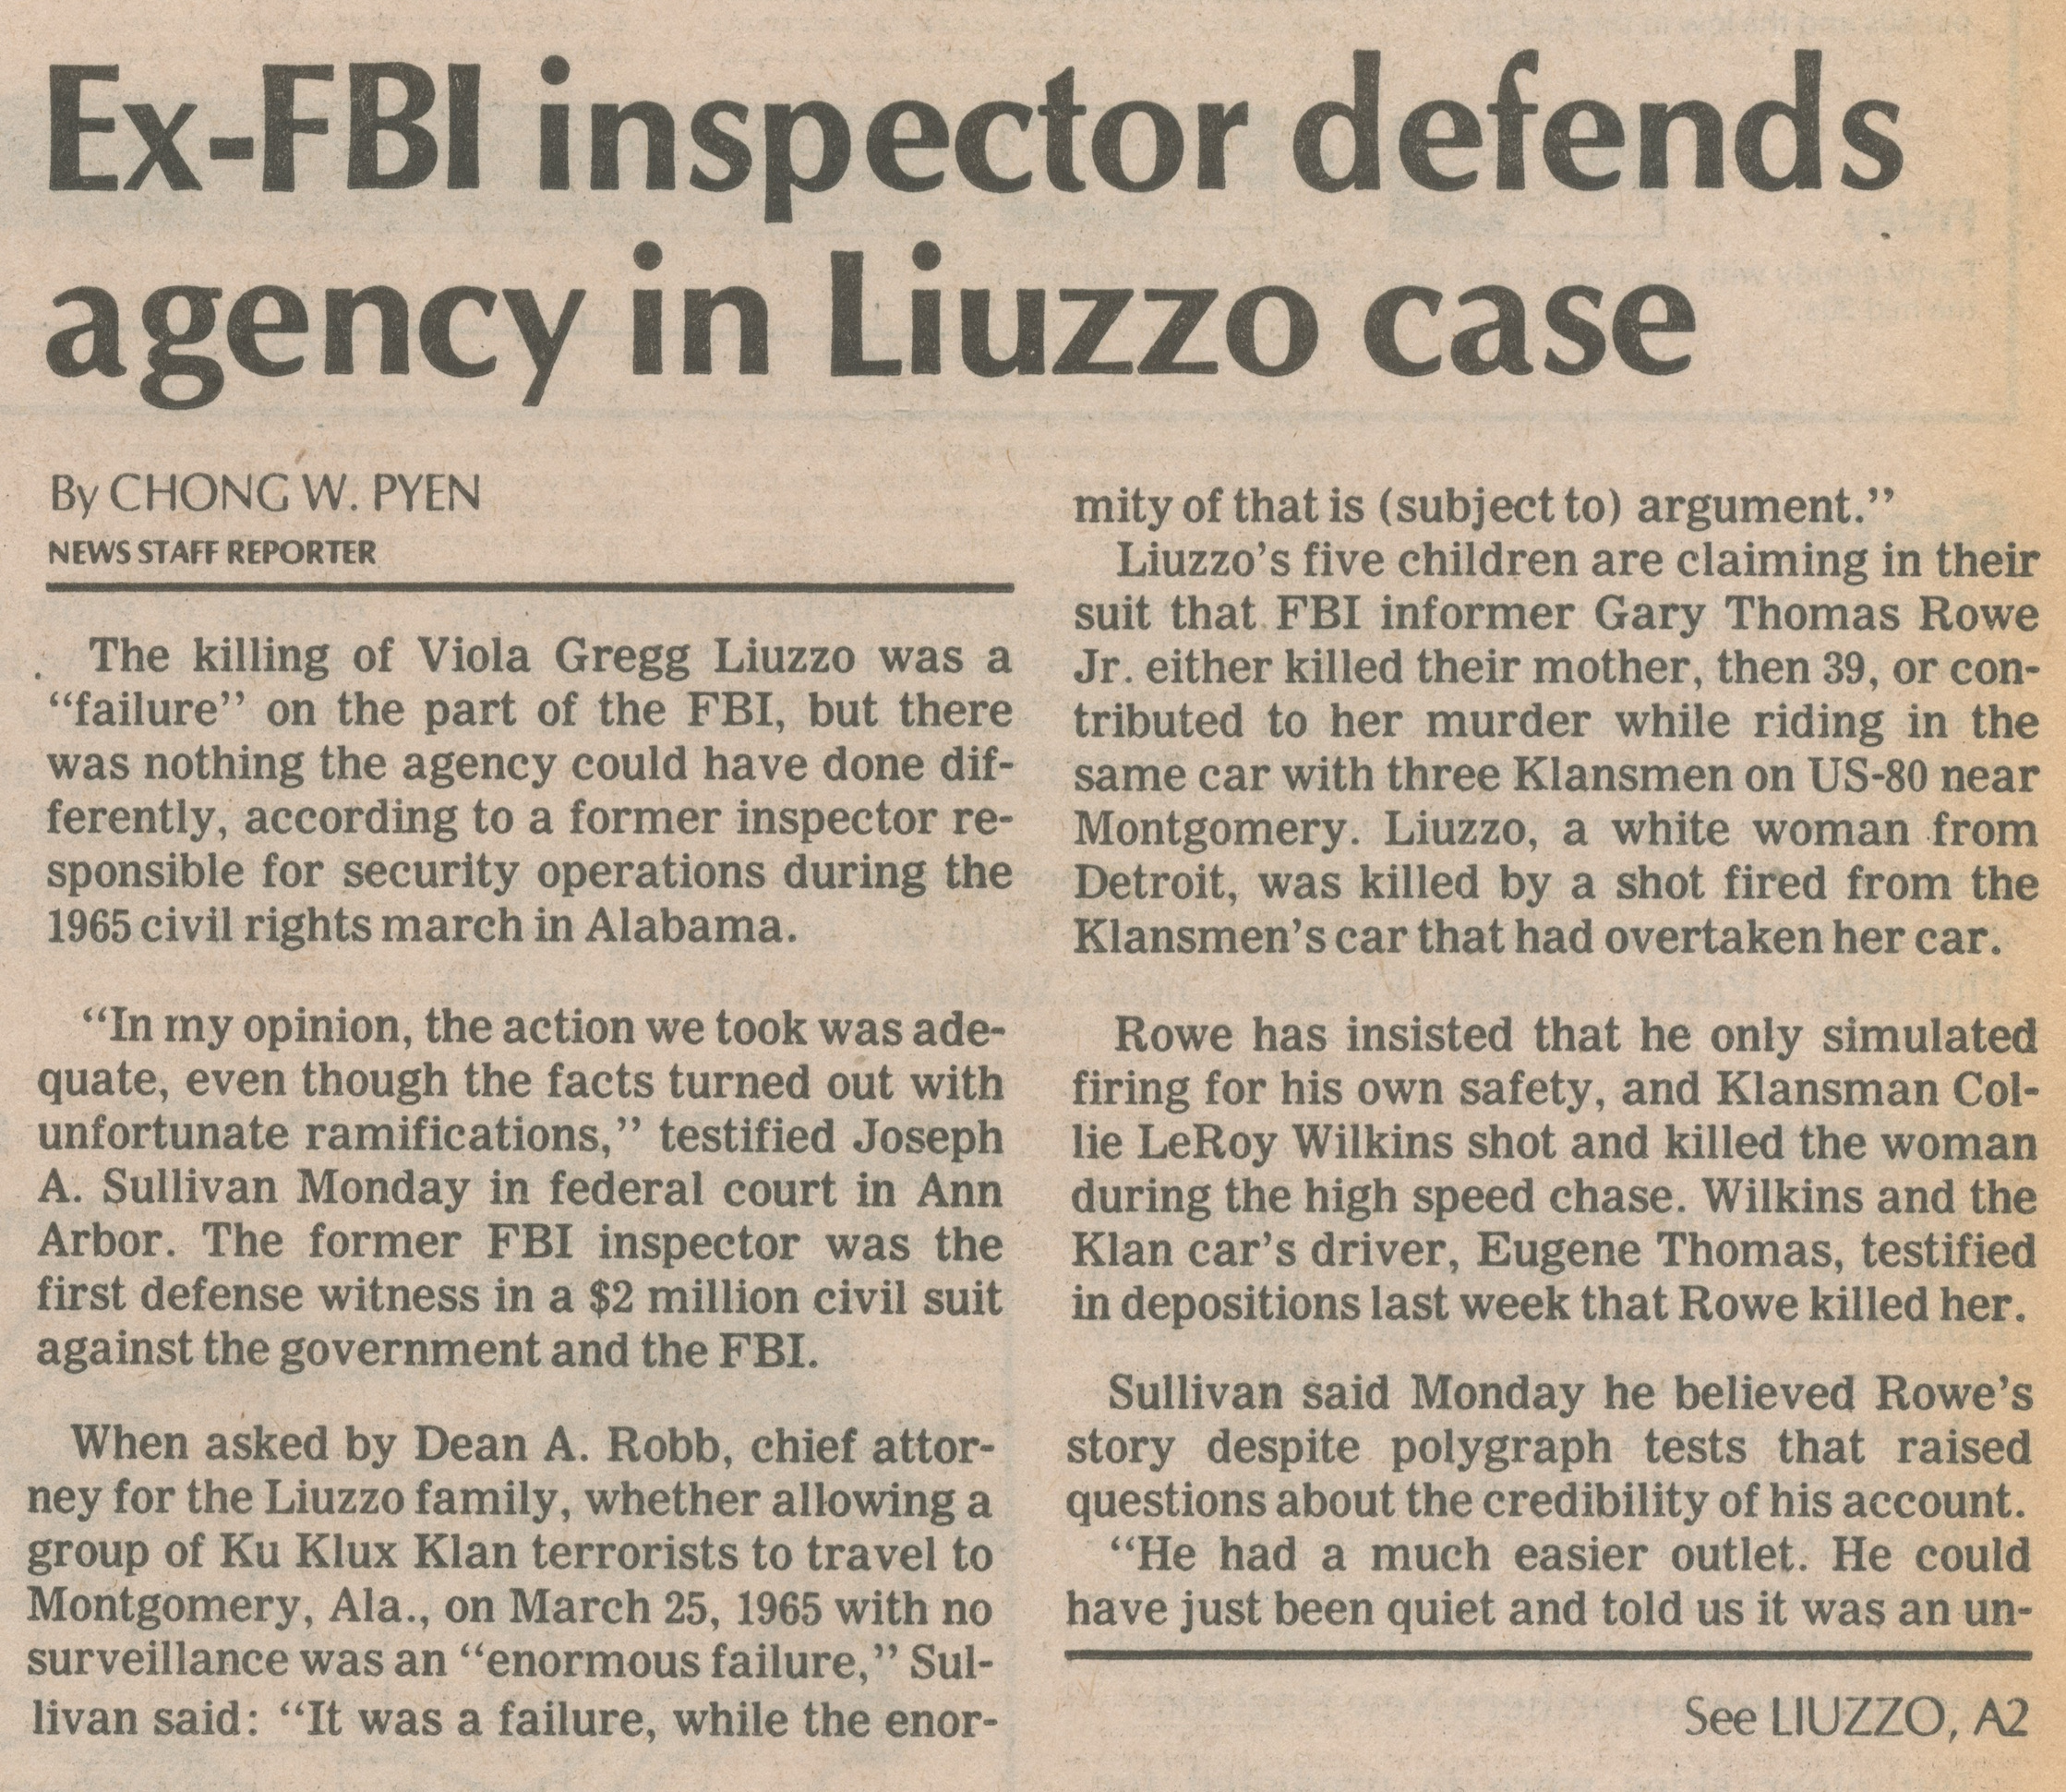 Ex-FBI Inspector Defends Agency In Liuzzo Case image